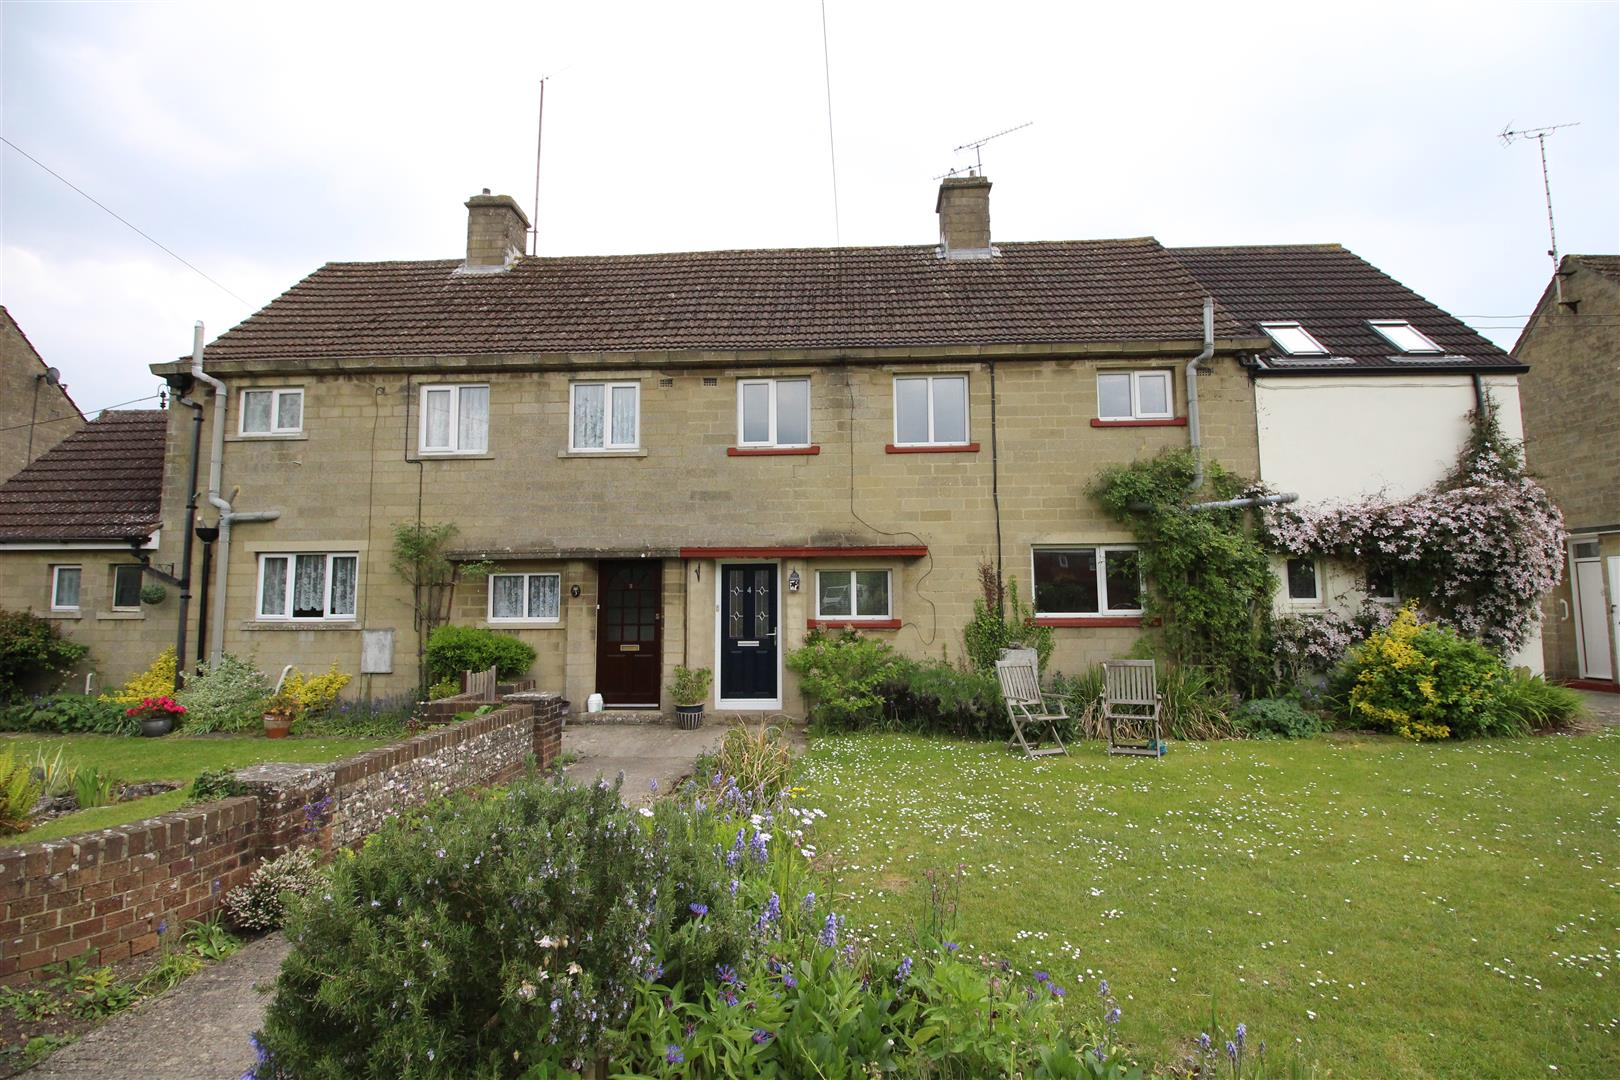 4 Bedrooms Property for sale in Downs View, Lydiard Millicent, Swindon